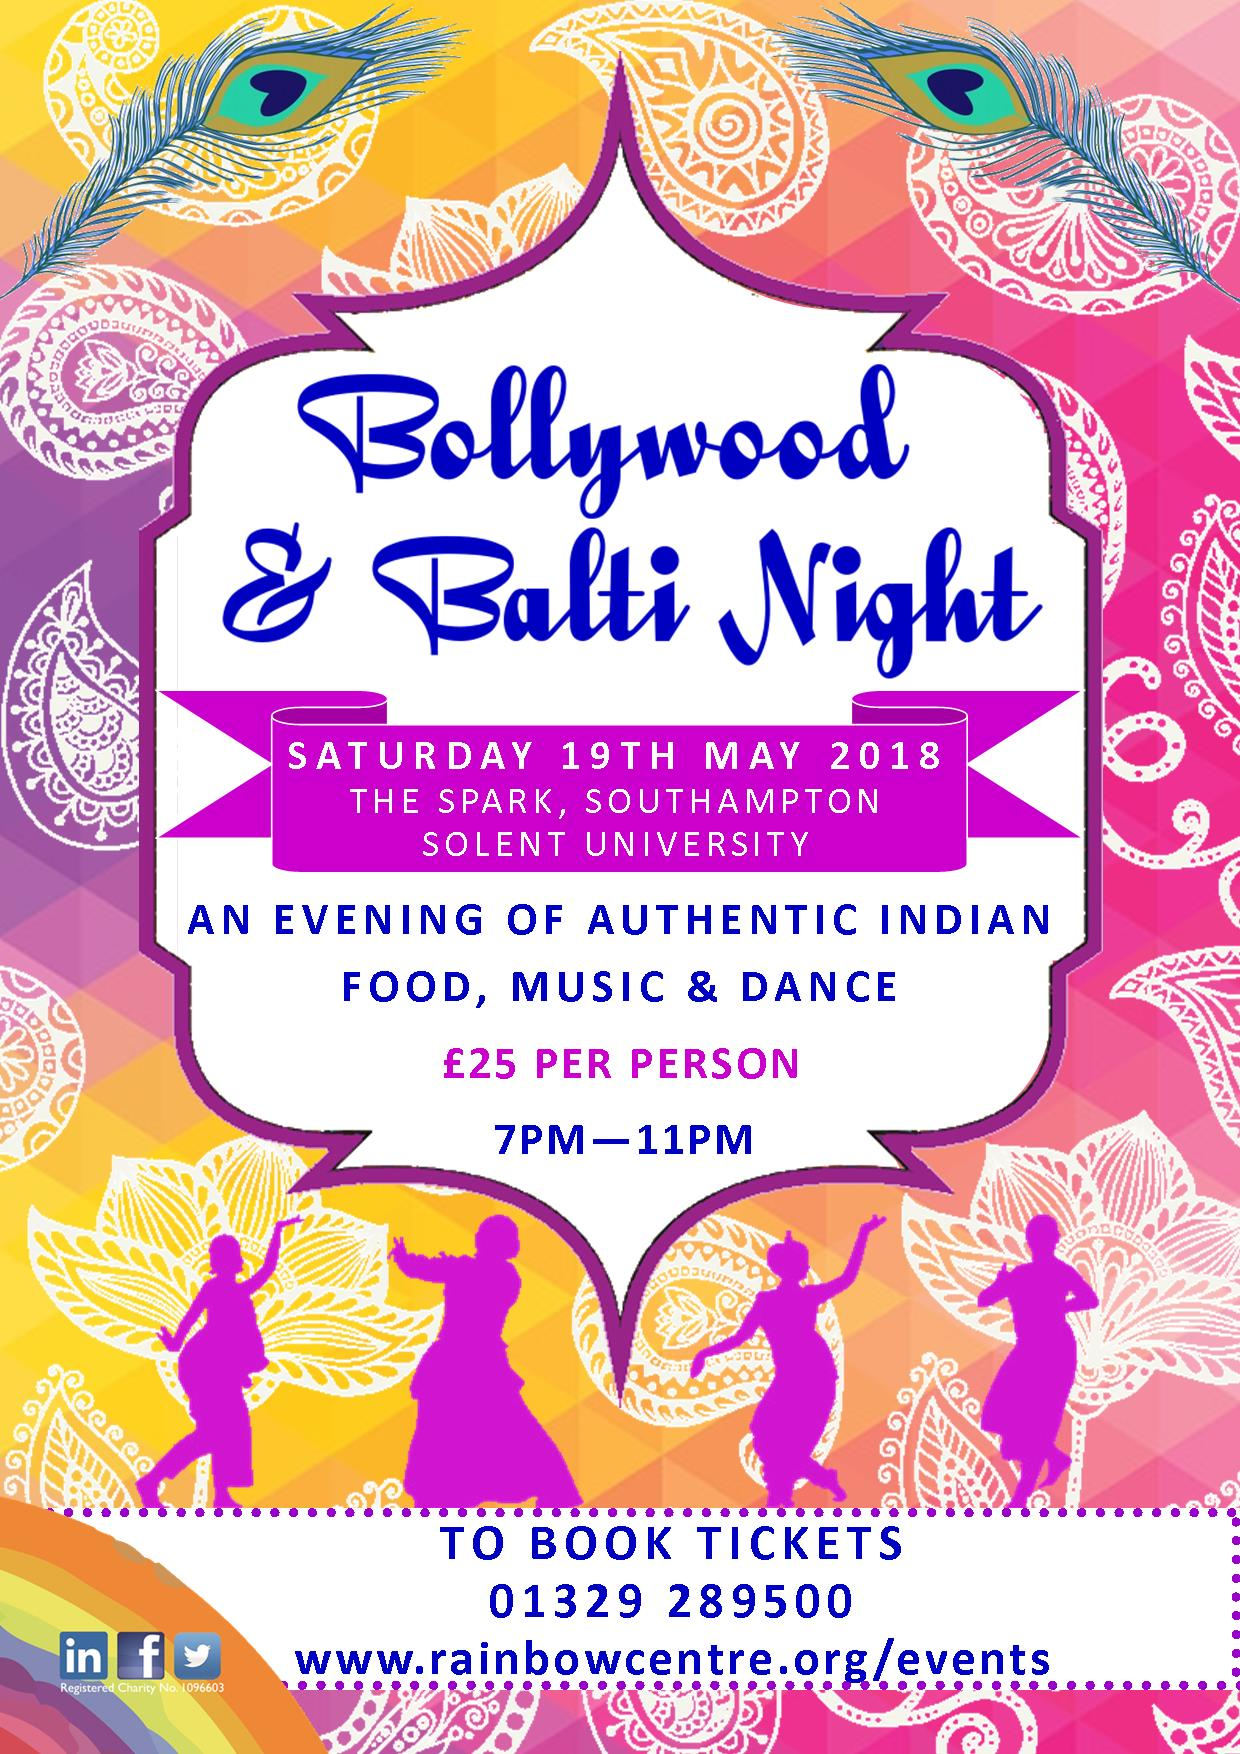 Bollywood & Balti Night event poster Southampton